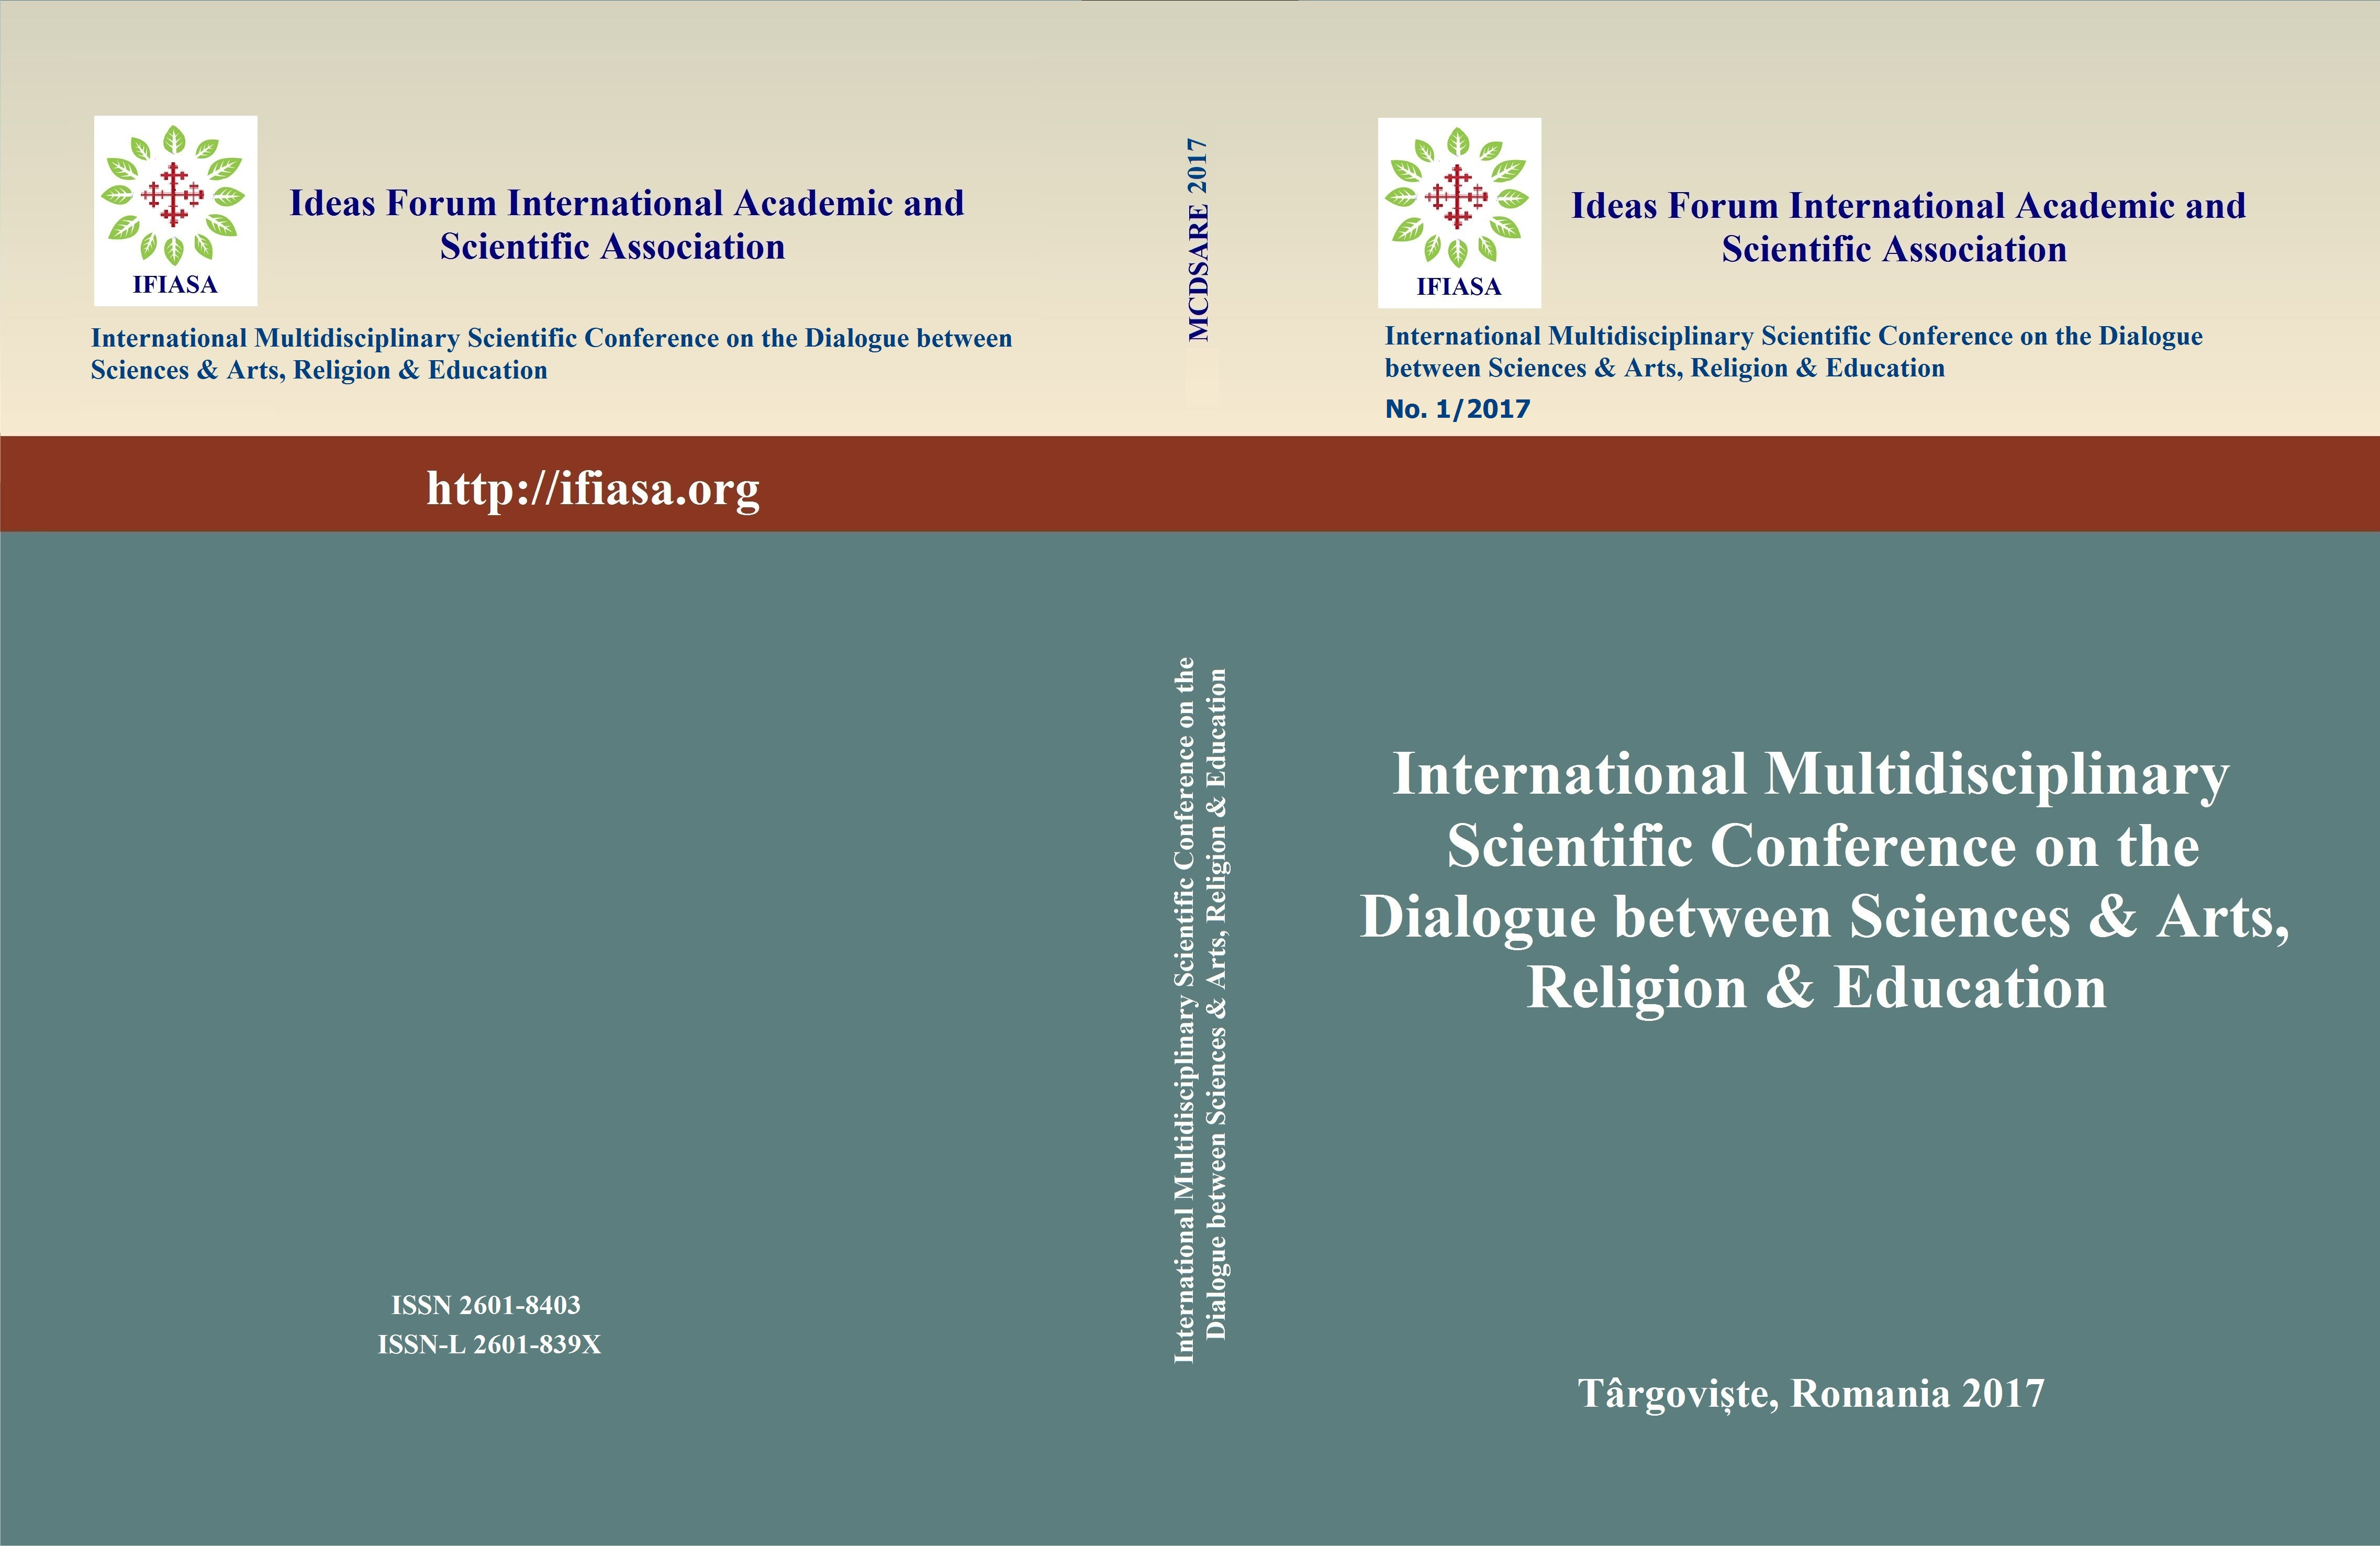 International Multidisciplinary Scientific Conference on the Dialogue between Sciences & Arts, Religion & Education